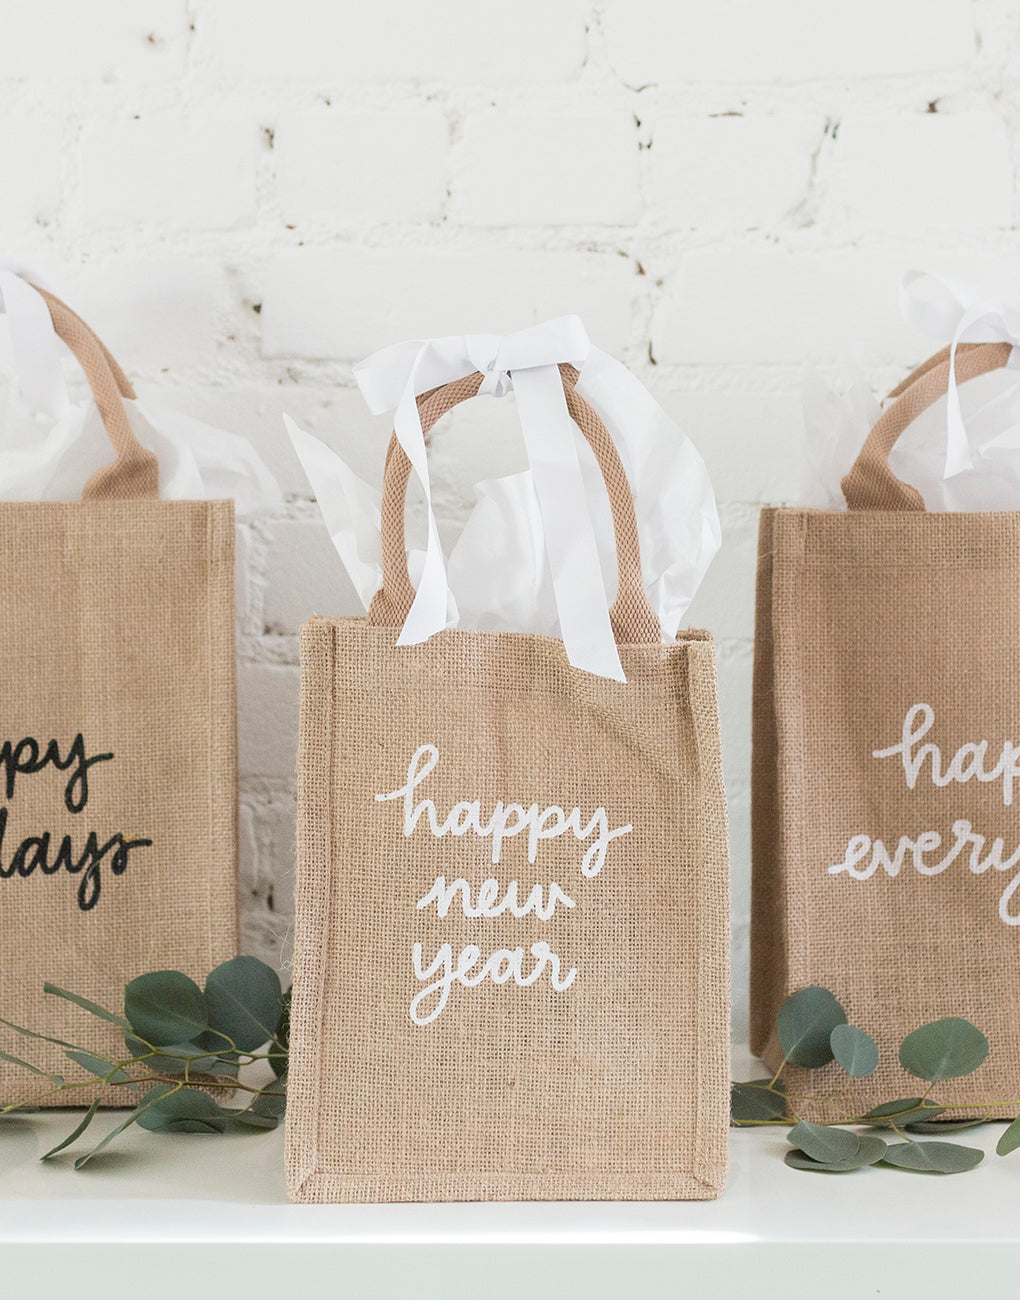 Small Happy New Year Reusable Gift Totes In Black And White Font | The Little Market